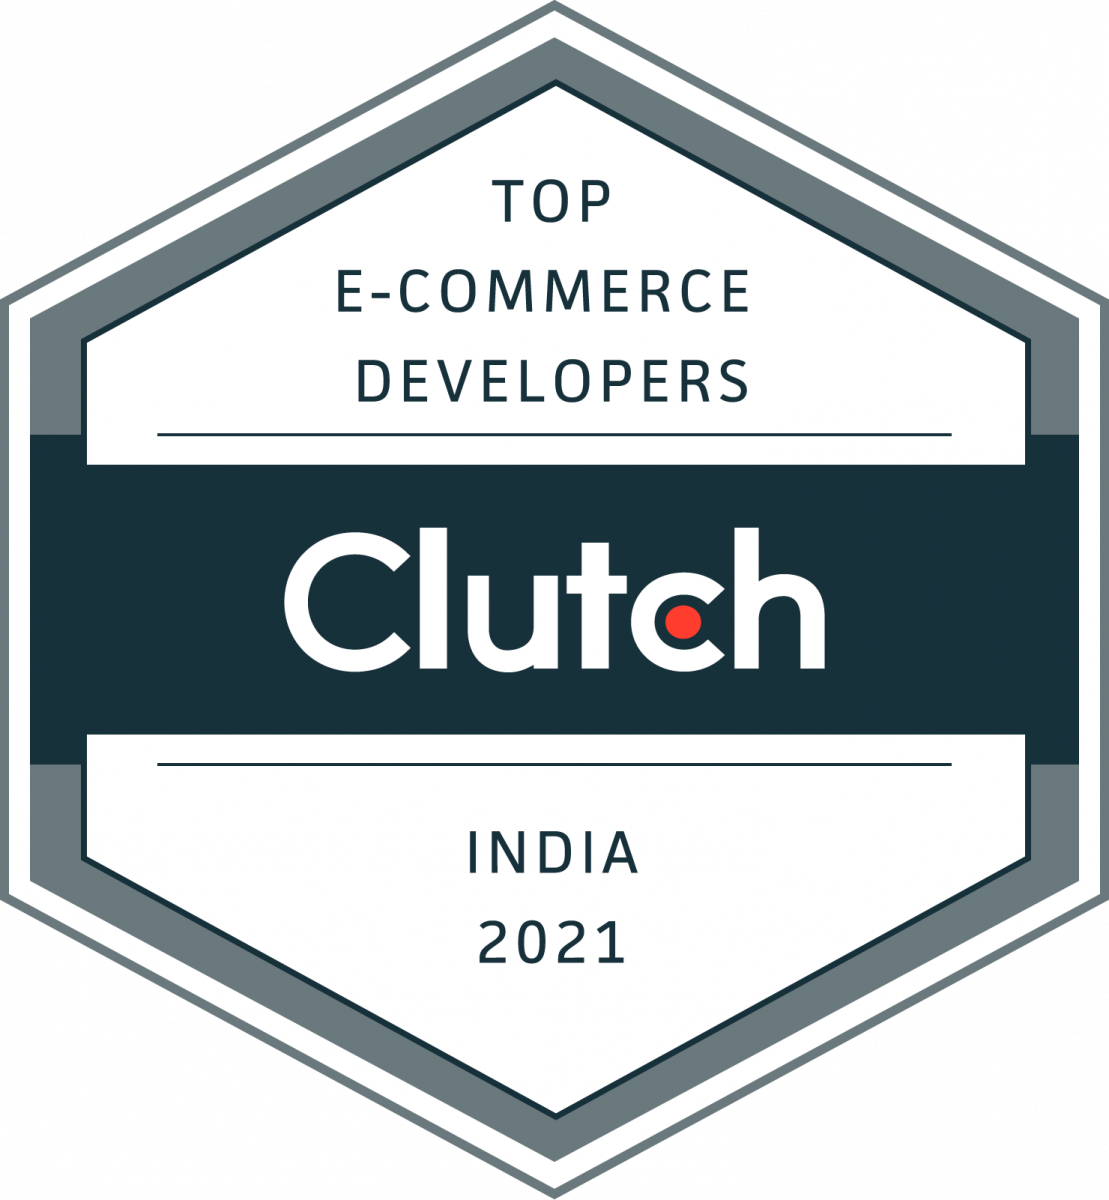 Awarded Top e-Commerce developer by Clutch